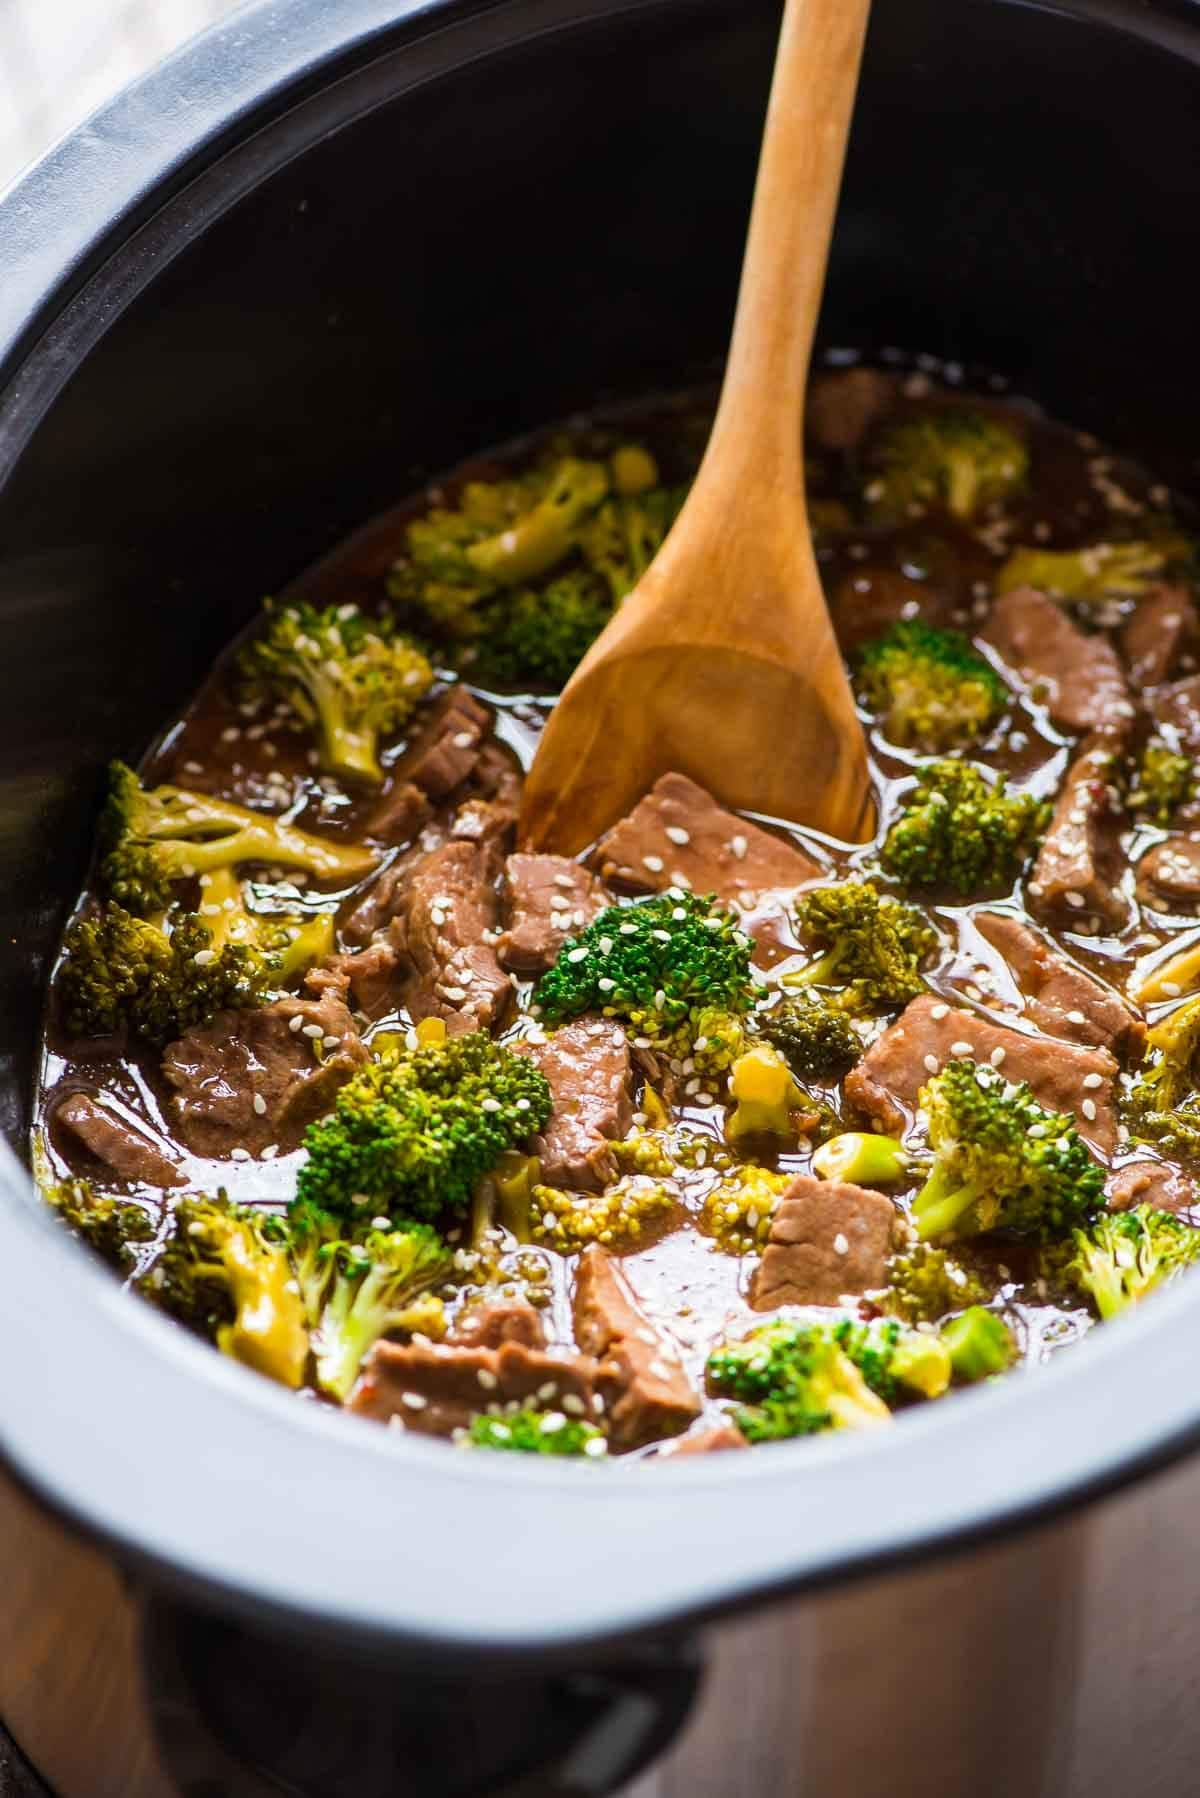 Slow Cooker Broccoli and Beef. Our family LOVED this healthy crock pot meal! So easy and the sauce is delicious! Recipe at wellplated.com | @wellplated